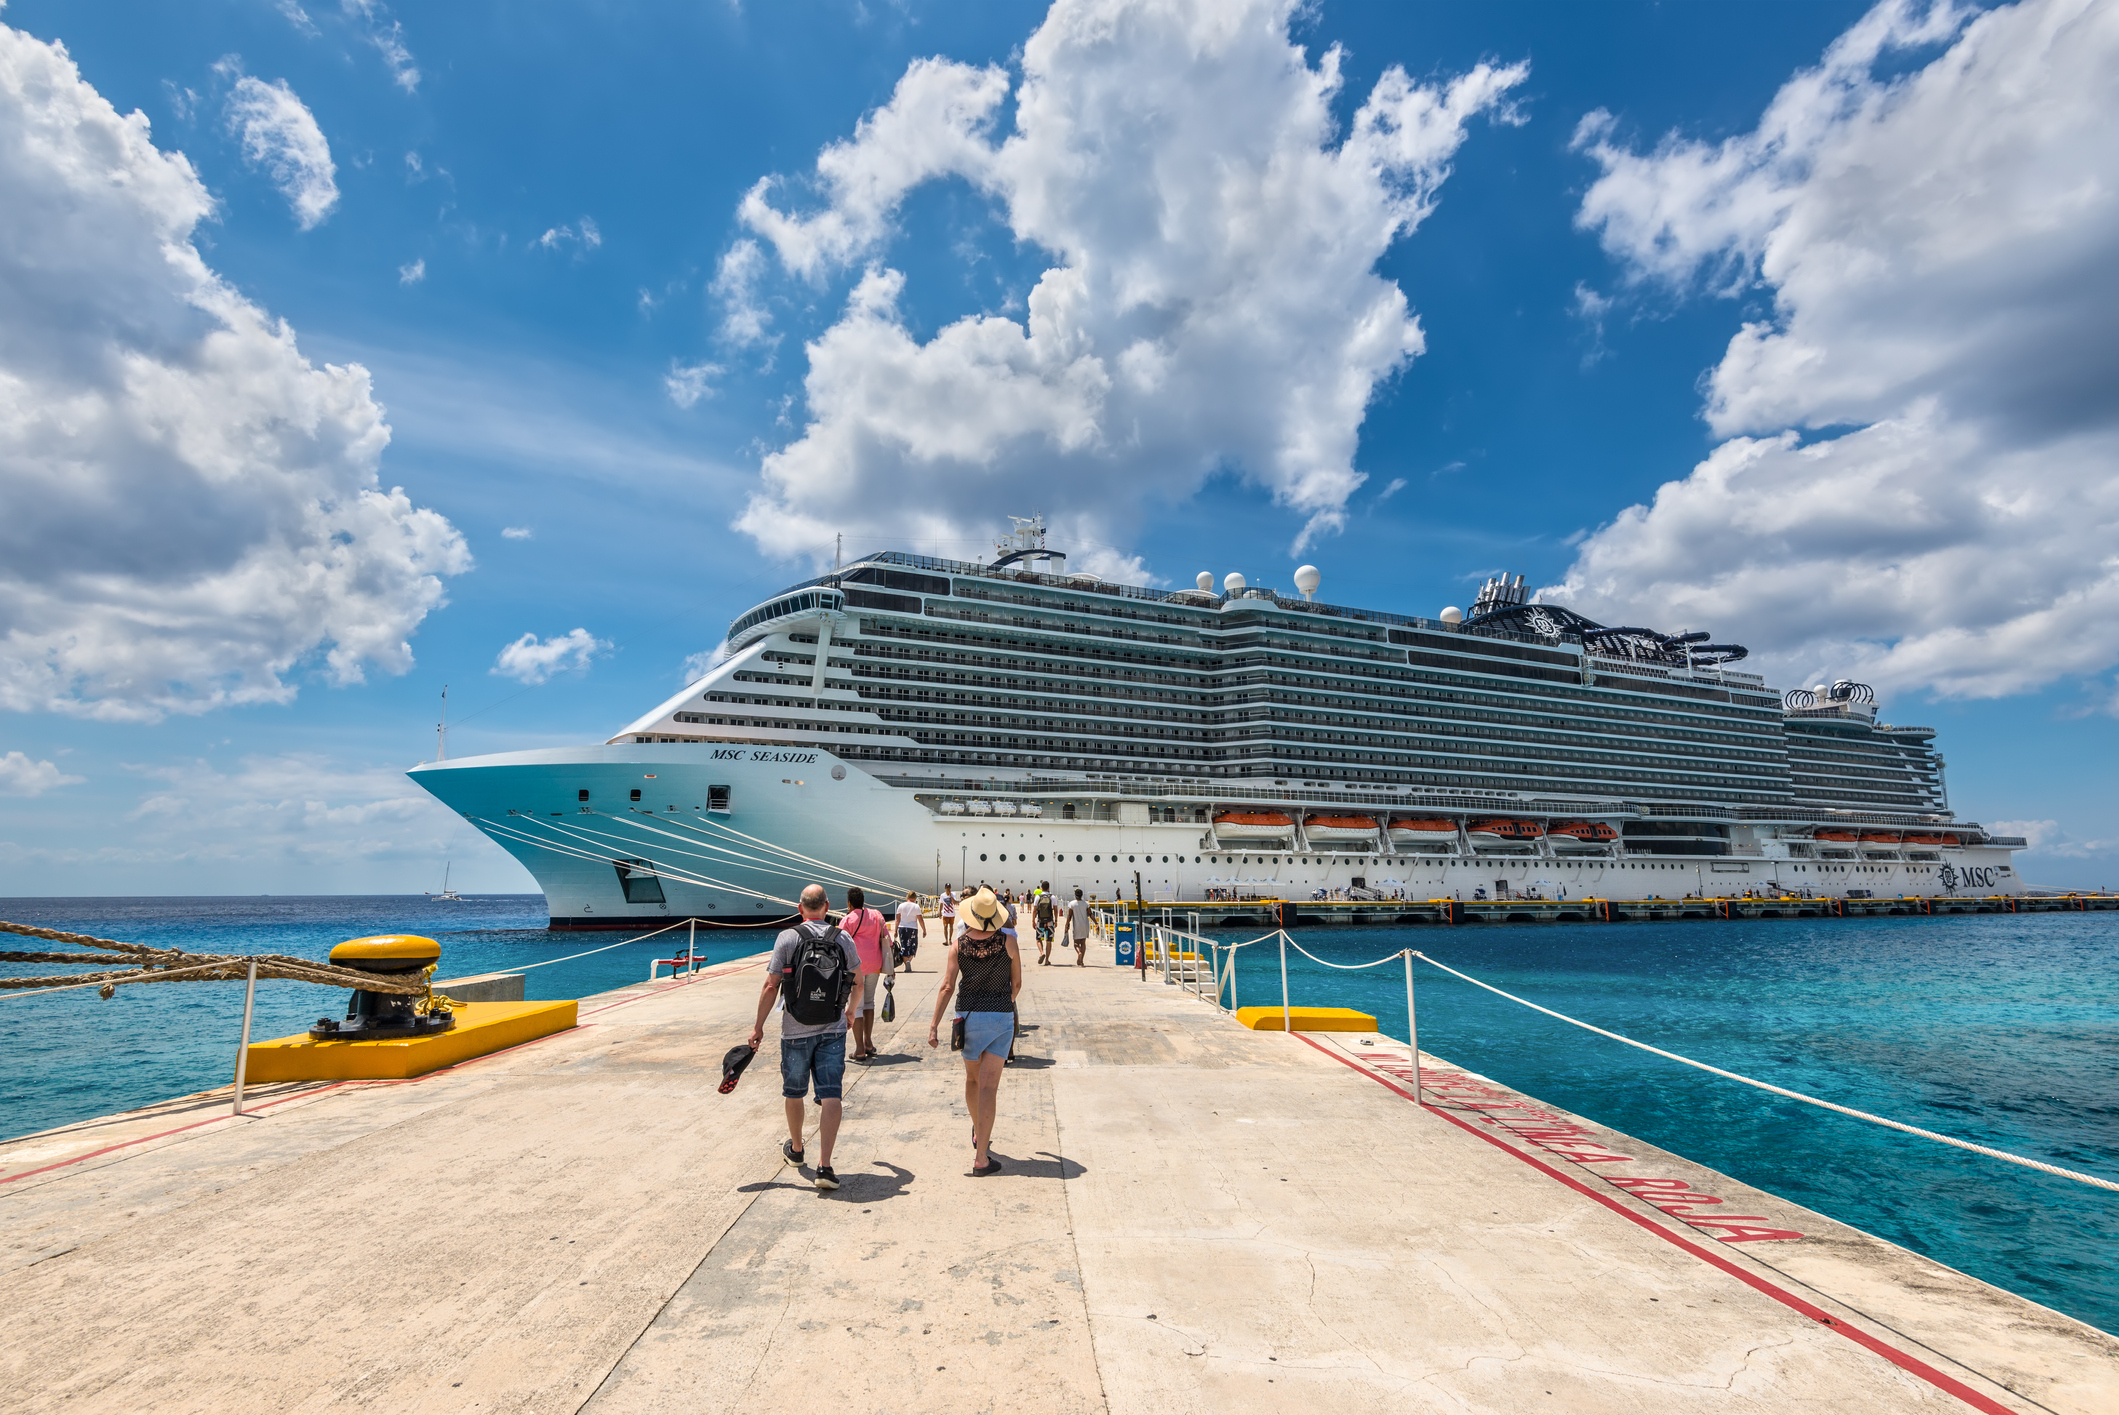 Cruise passengers arrive to the cruise ship to check in and board the MSC Seaside Cruise Ship which sails from Cozumel to Miami.